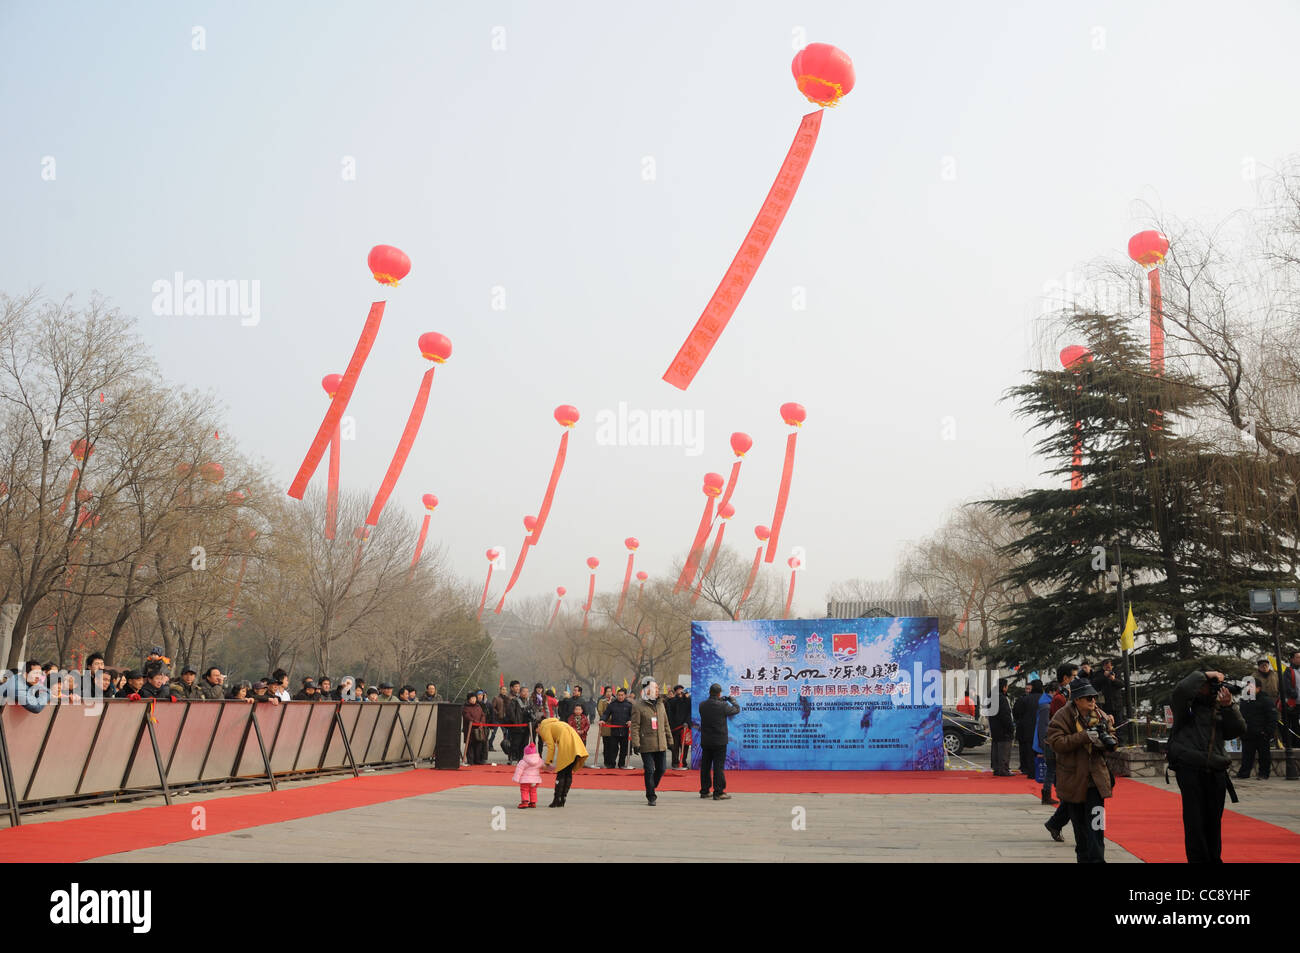 Chinese Festival Stock Photos & Chinese Festival Stock Images - Alamy